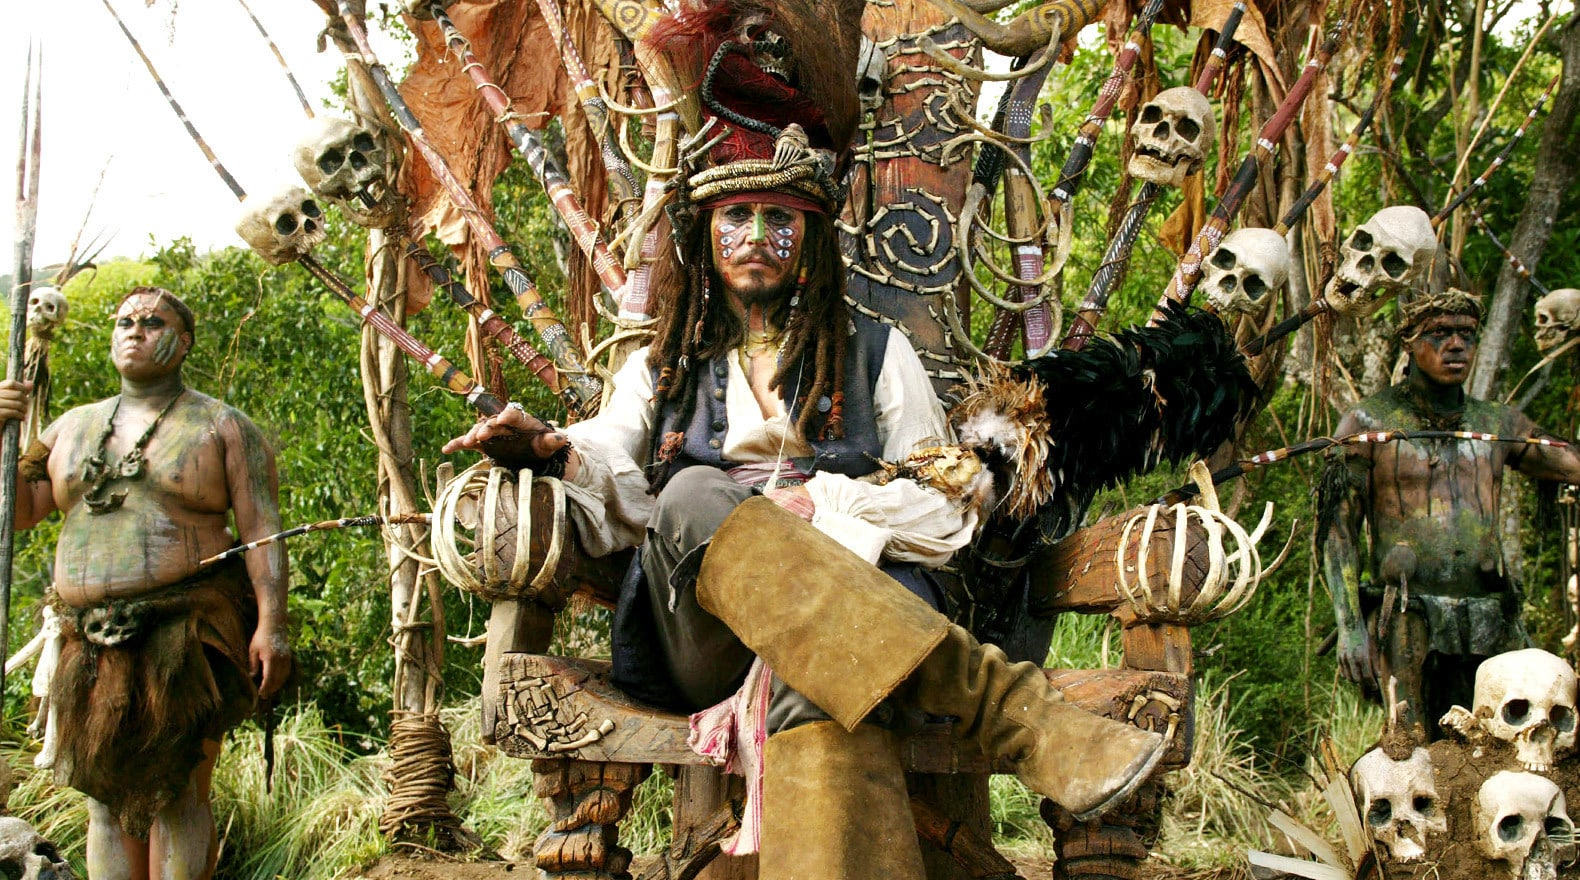 Captain Jack is worshipped as a god on a remote island.